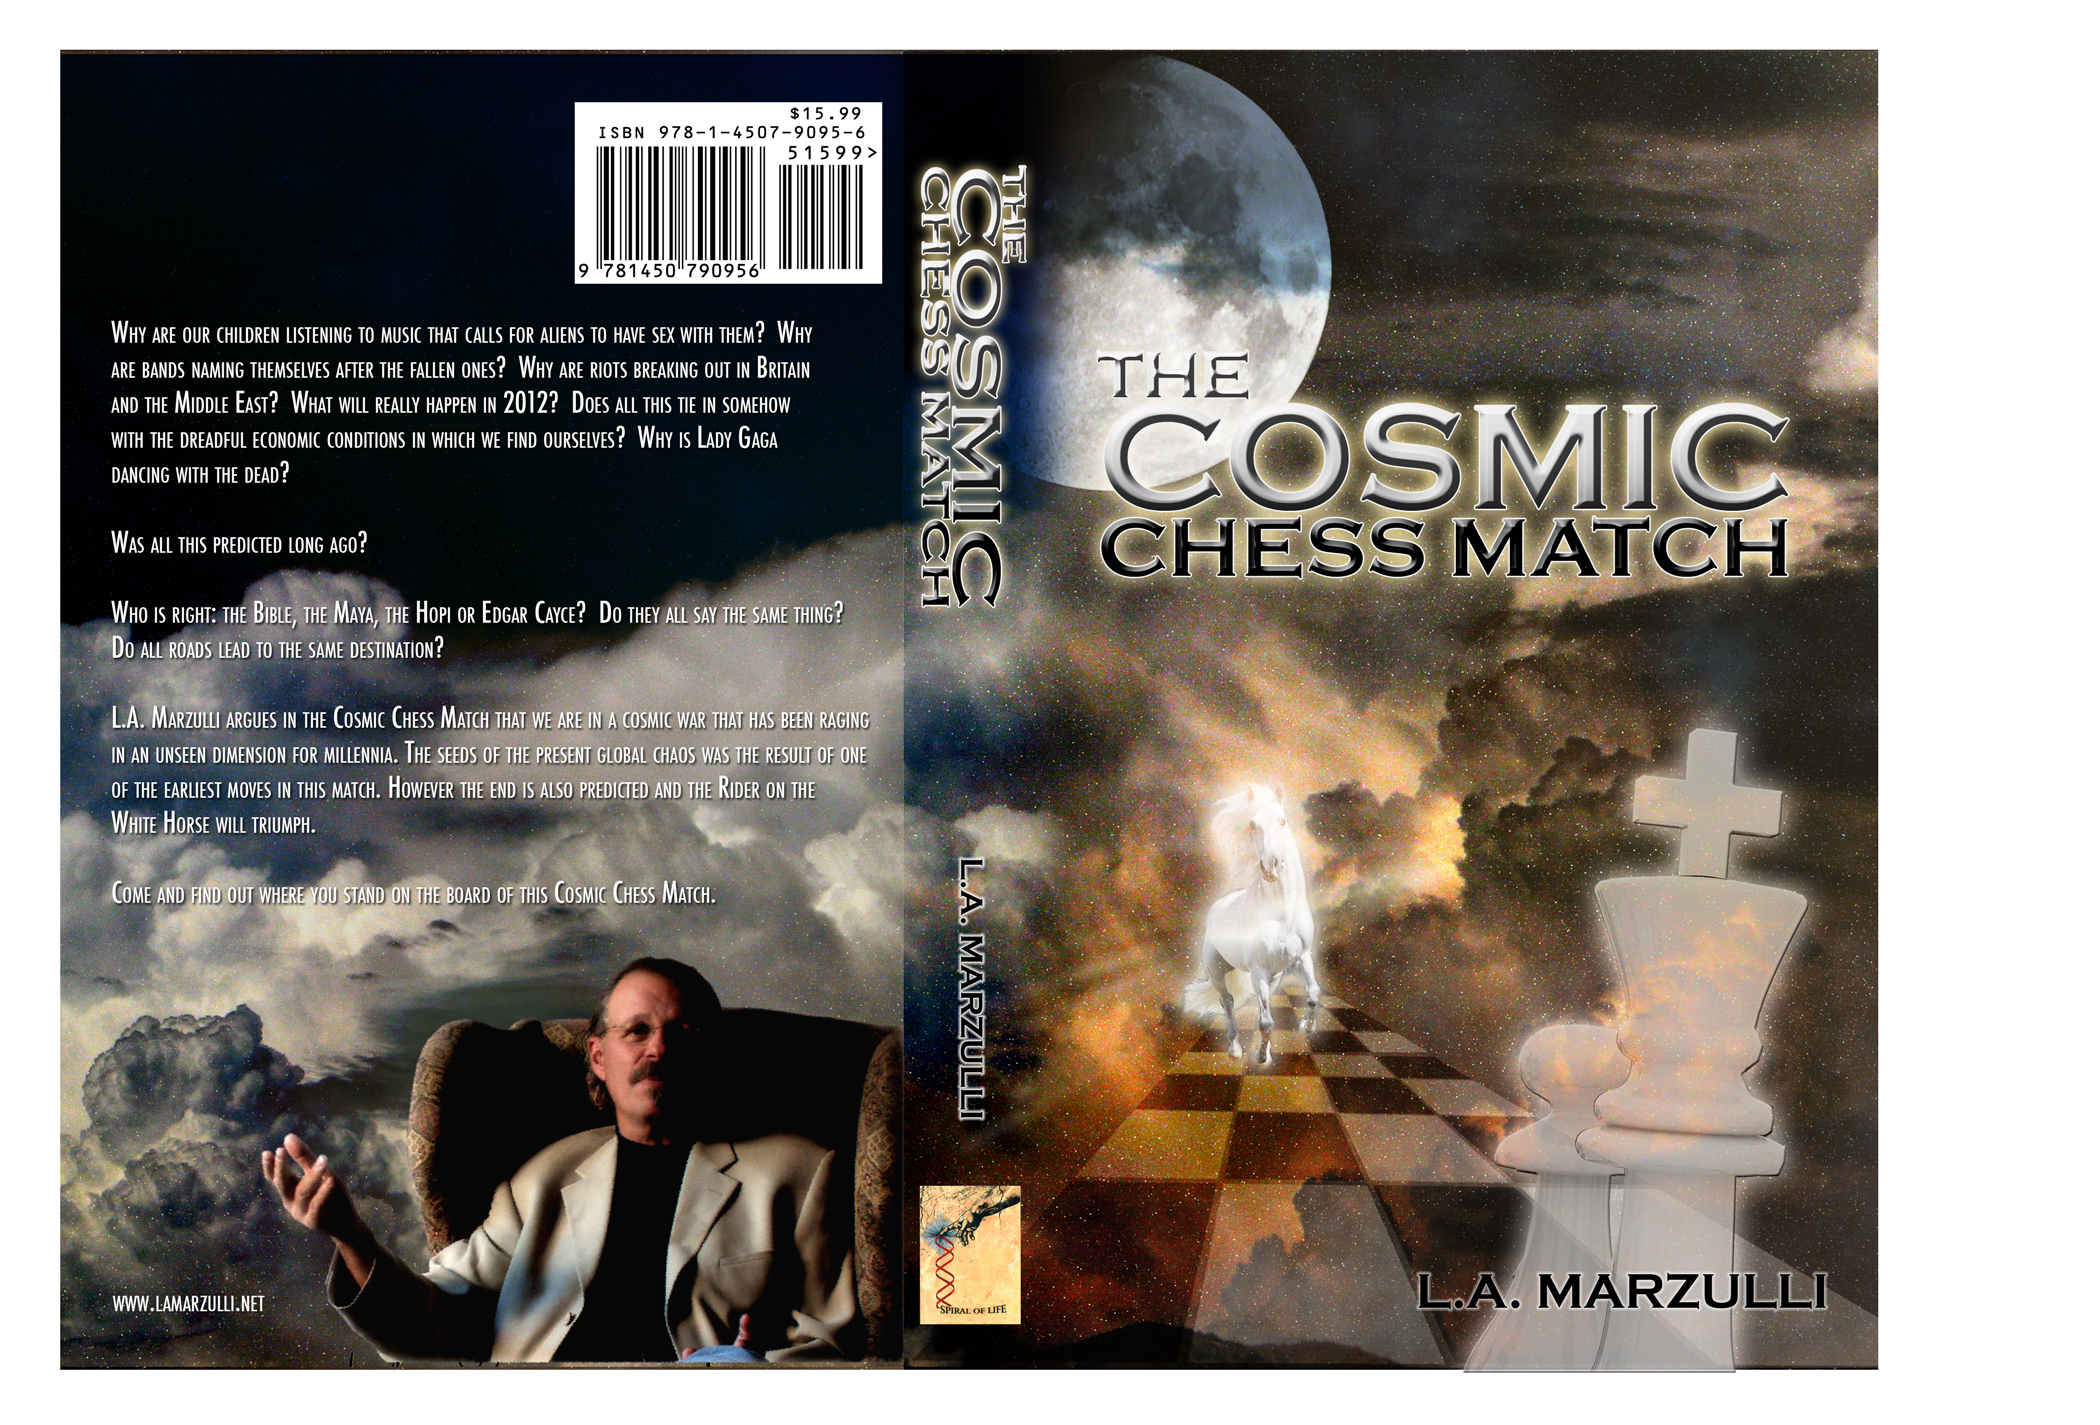 Coast june 28 l a marzulli it s not business as usual - Coming Soon The Cosmic Chess Match